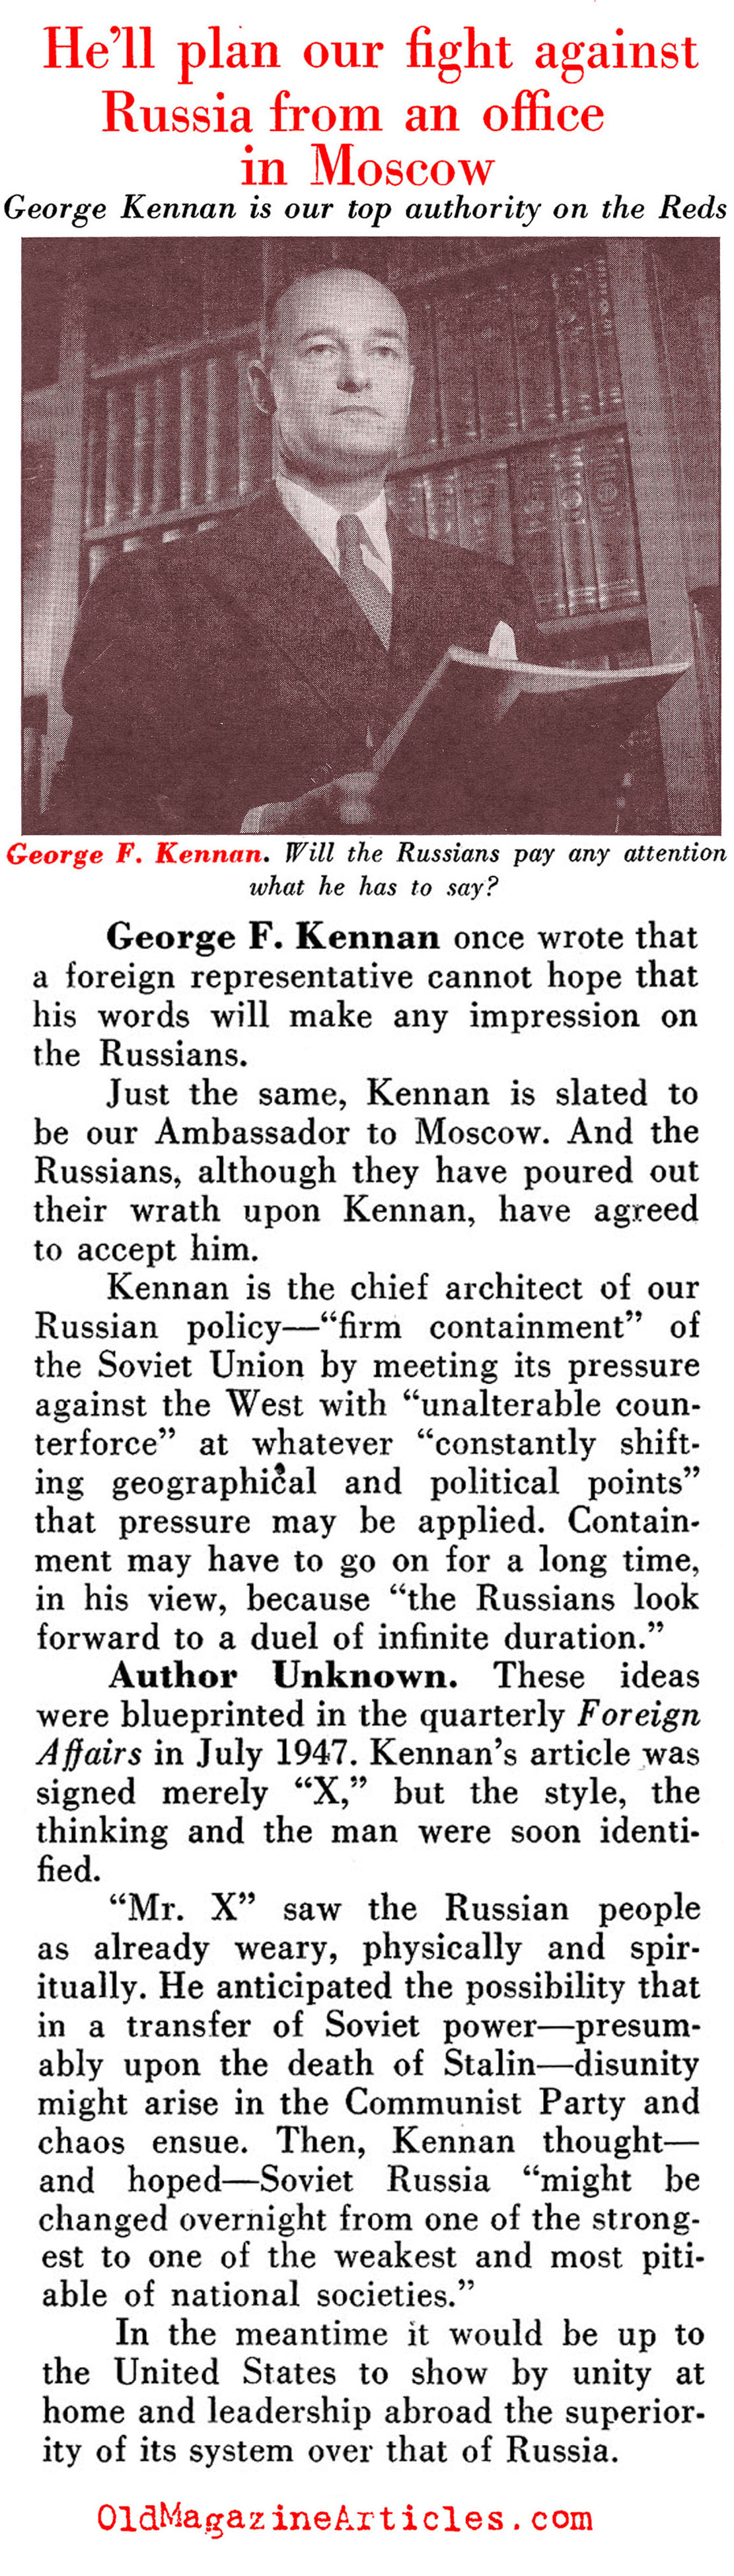 George F. Kennan: Mr. X (Pathfinder Magazine, 1949)